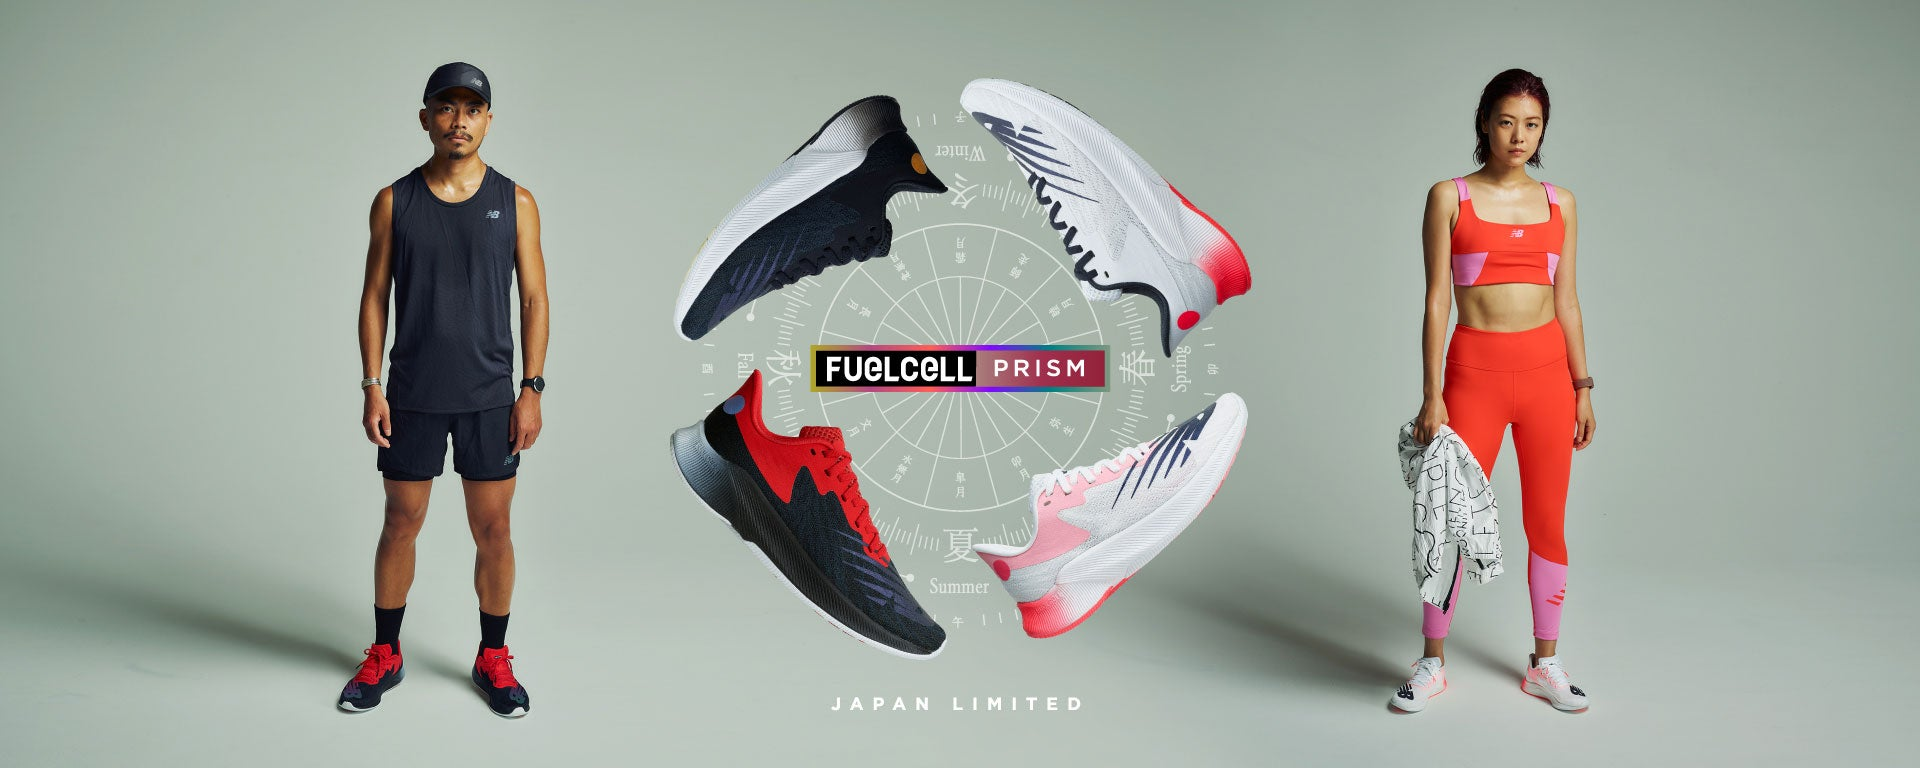 FuelCell JAPAN LIMITED